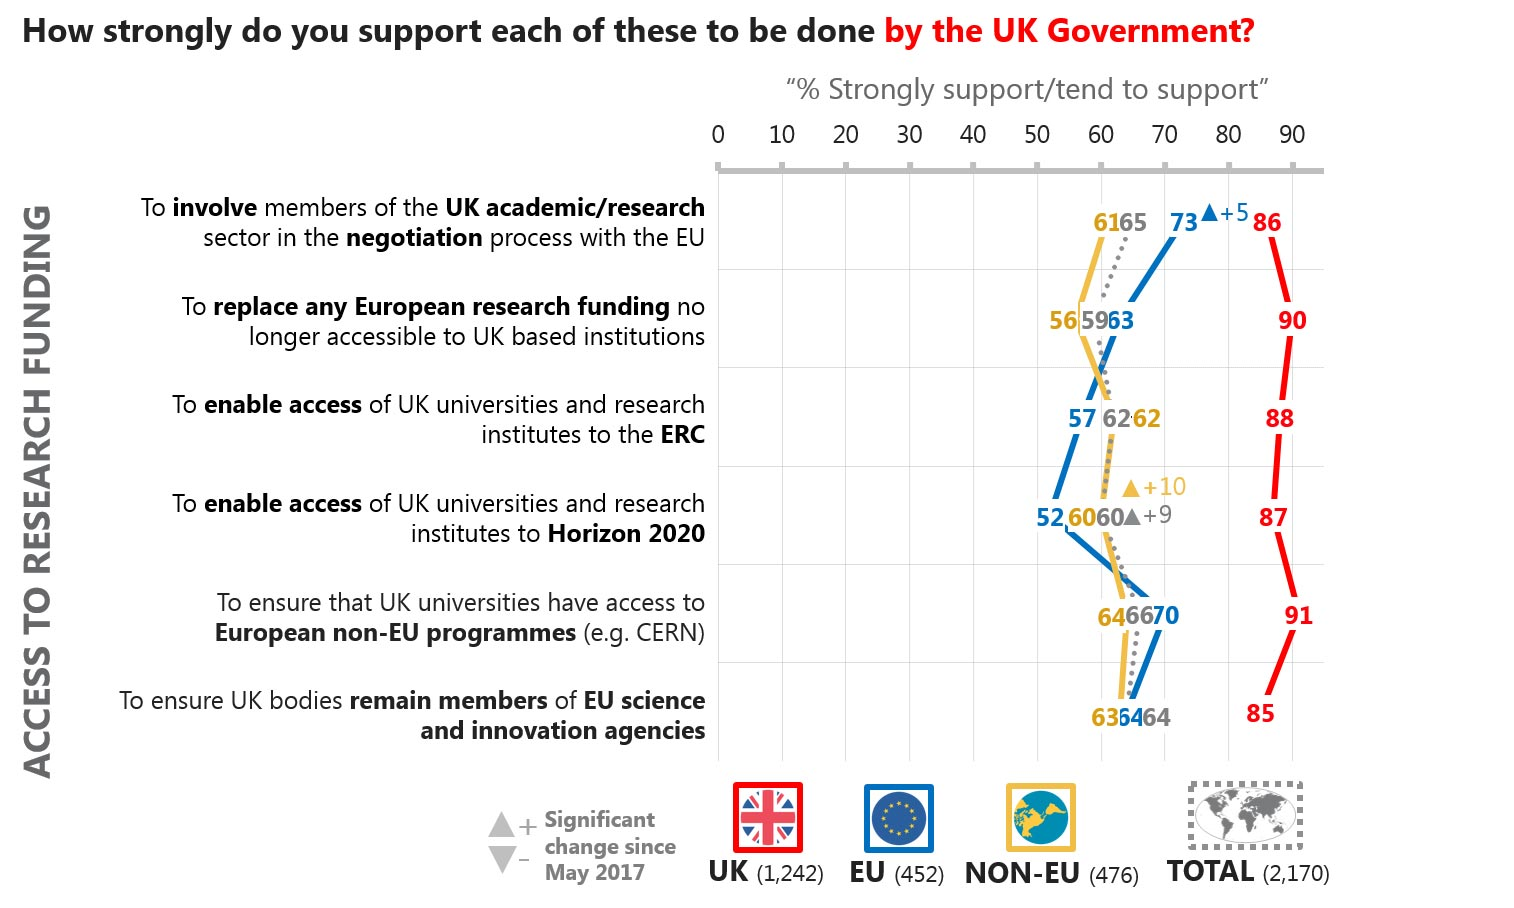 UK-based researchers say sourcing funding opportunities should be a key priority for the UK government.